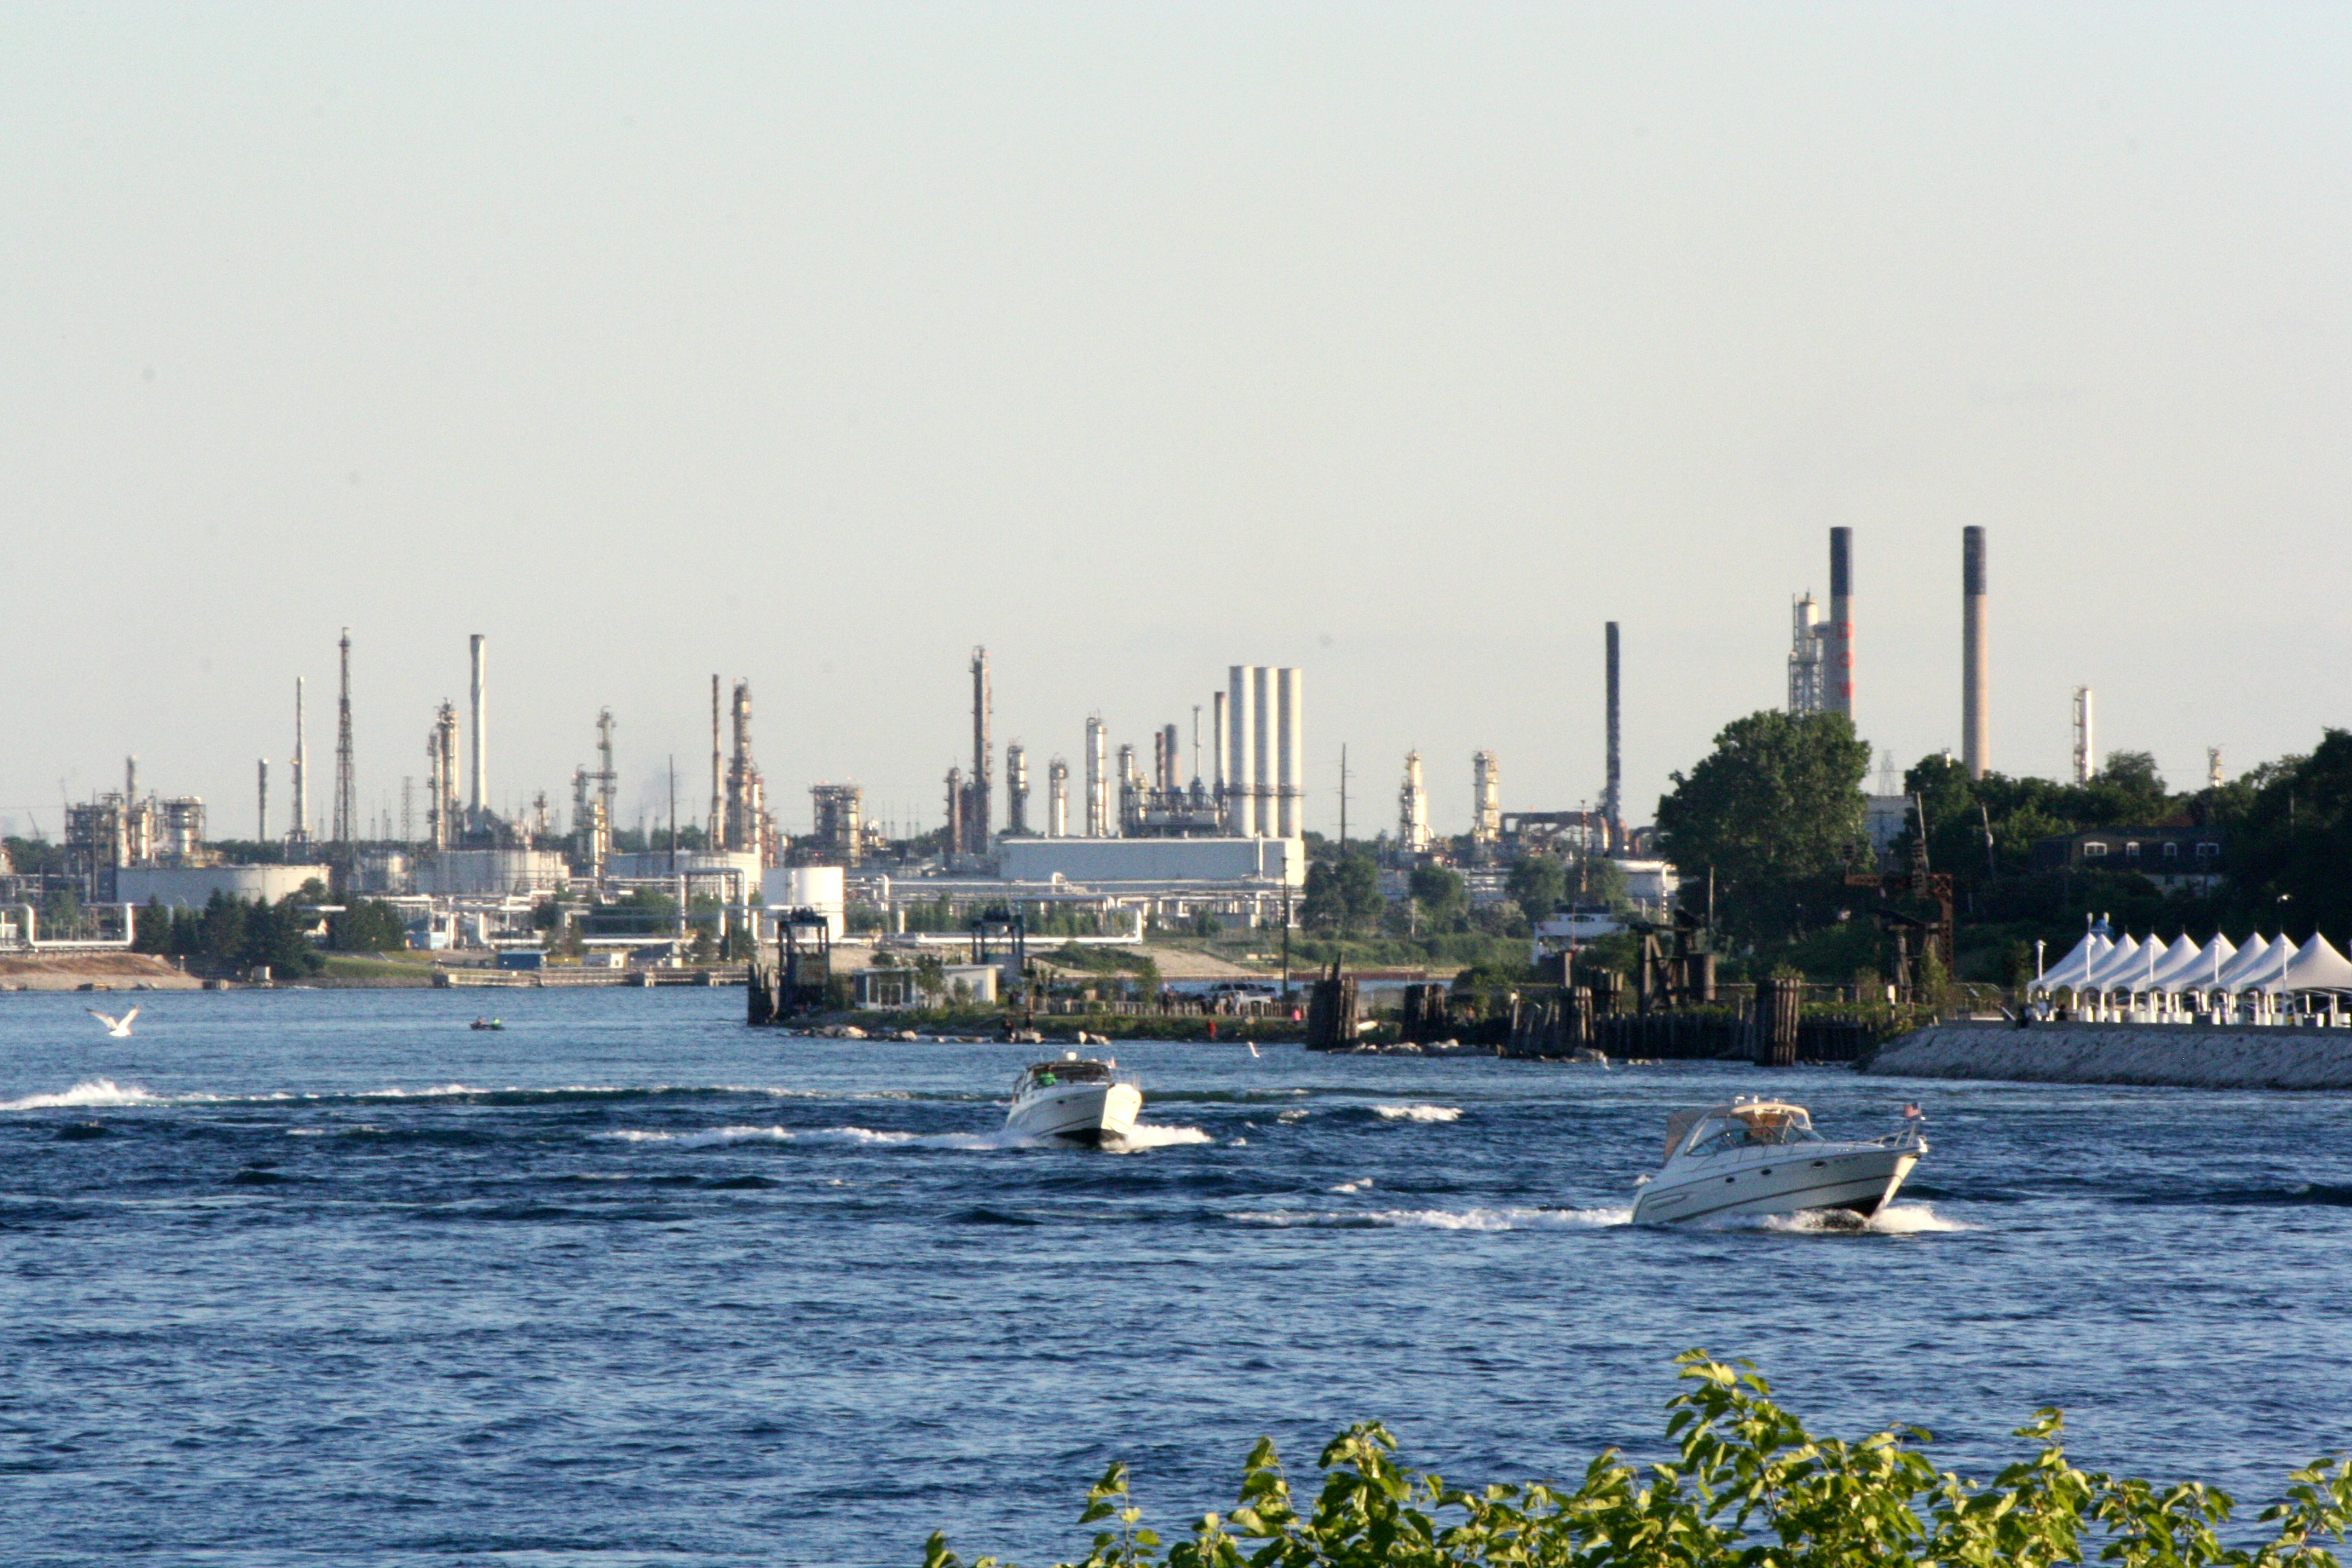 Boats On St. Clair River (BlackburnNews.com file photo by Dave Dentinger)